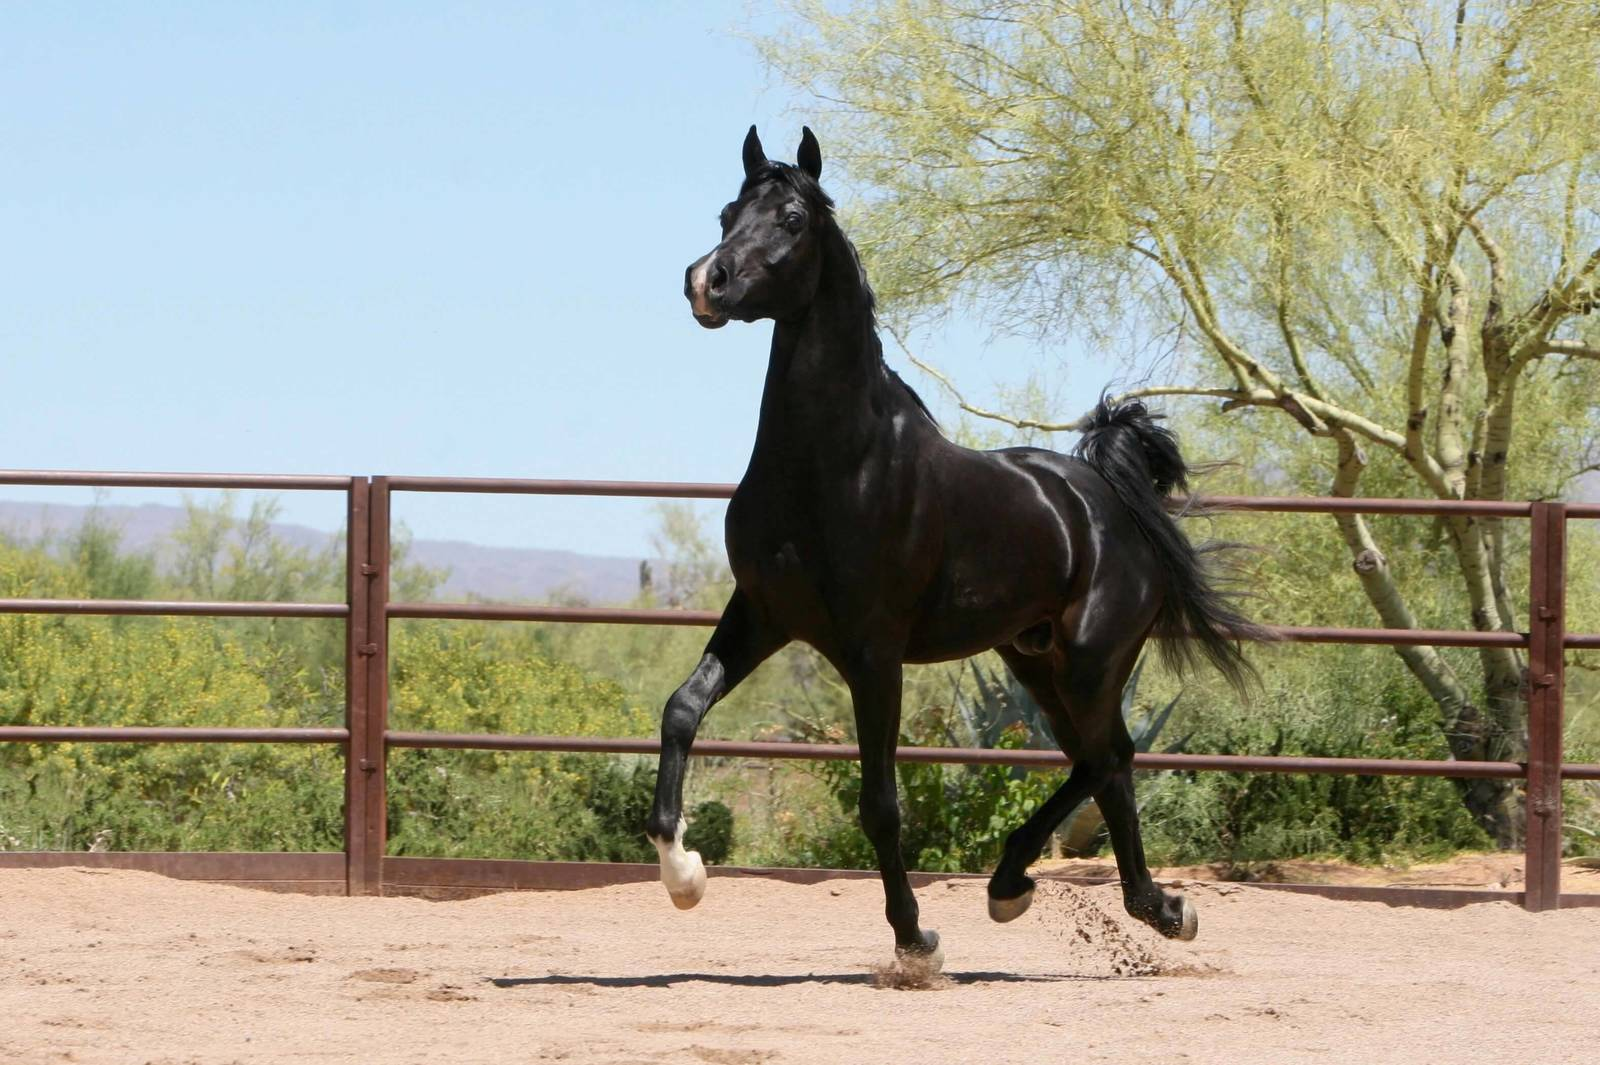 Homozygous Black SE Stallion - age 2